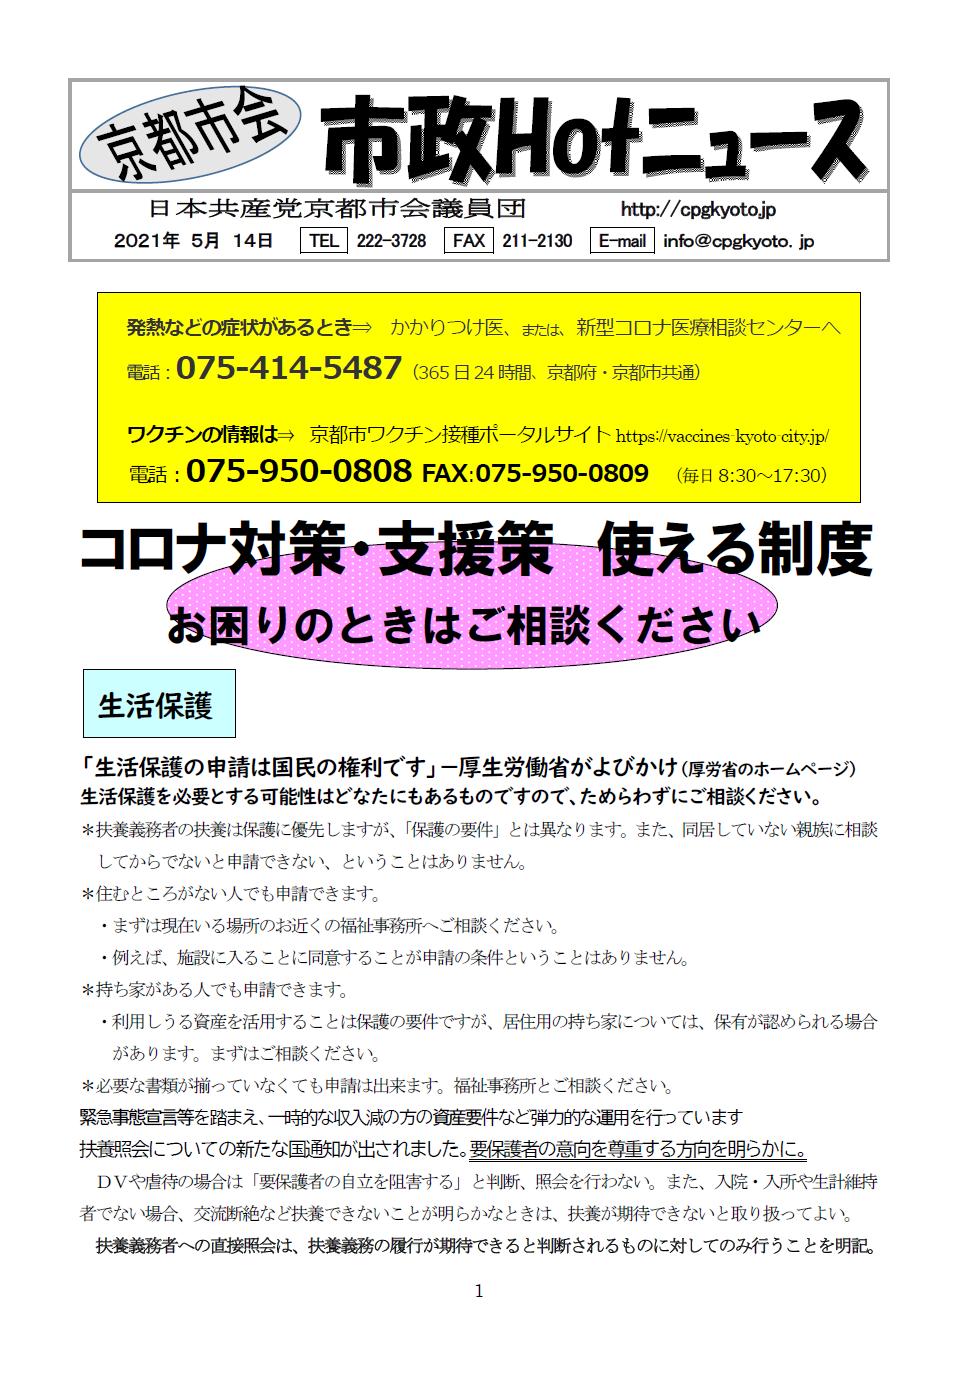 http://www.cpgkyoto.jp/topic/20210514%E4%BD%BF%E3%81%88%E3%82%8B%E5%88%B6%E5%BA%A6.png